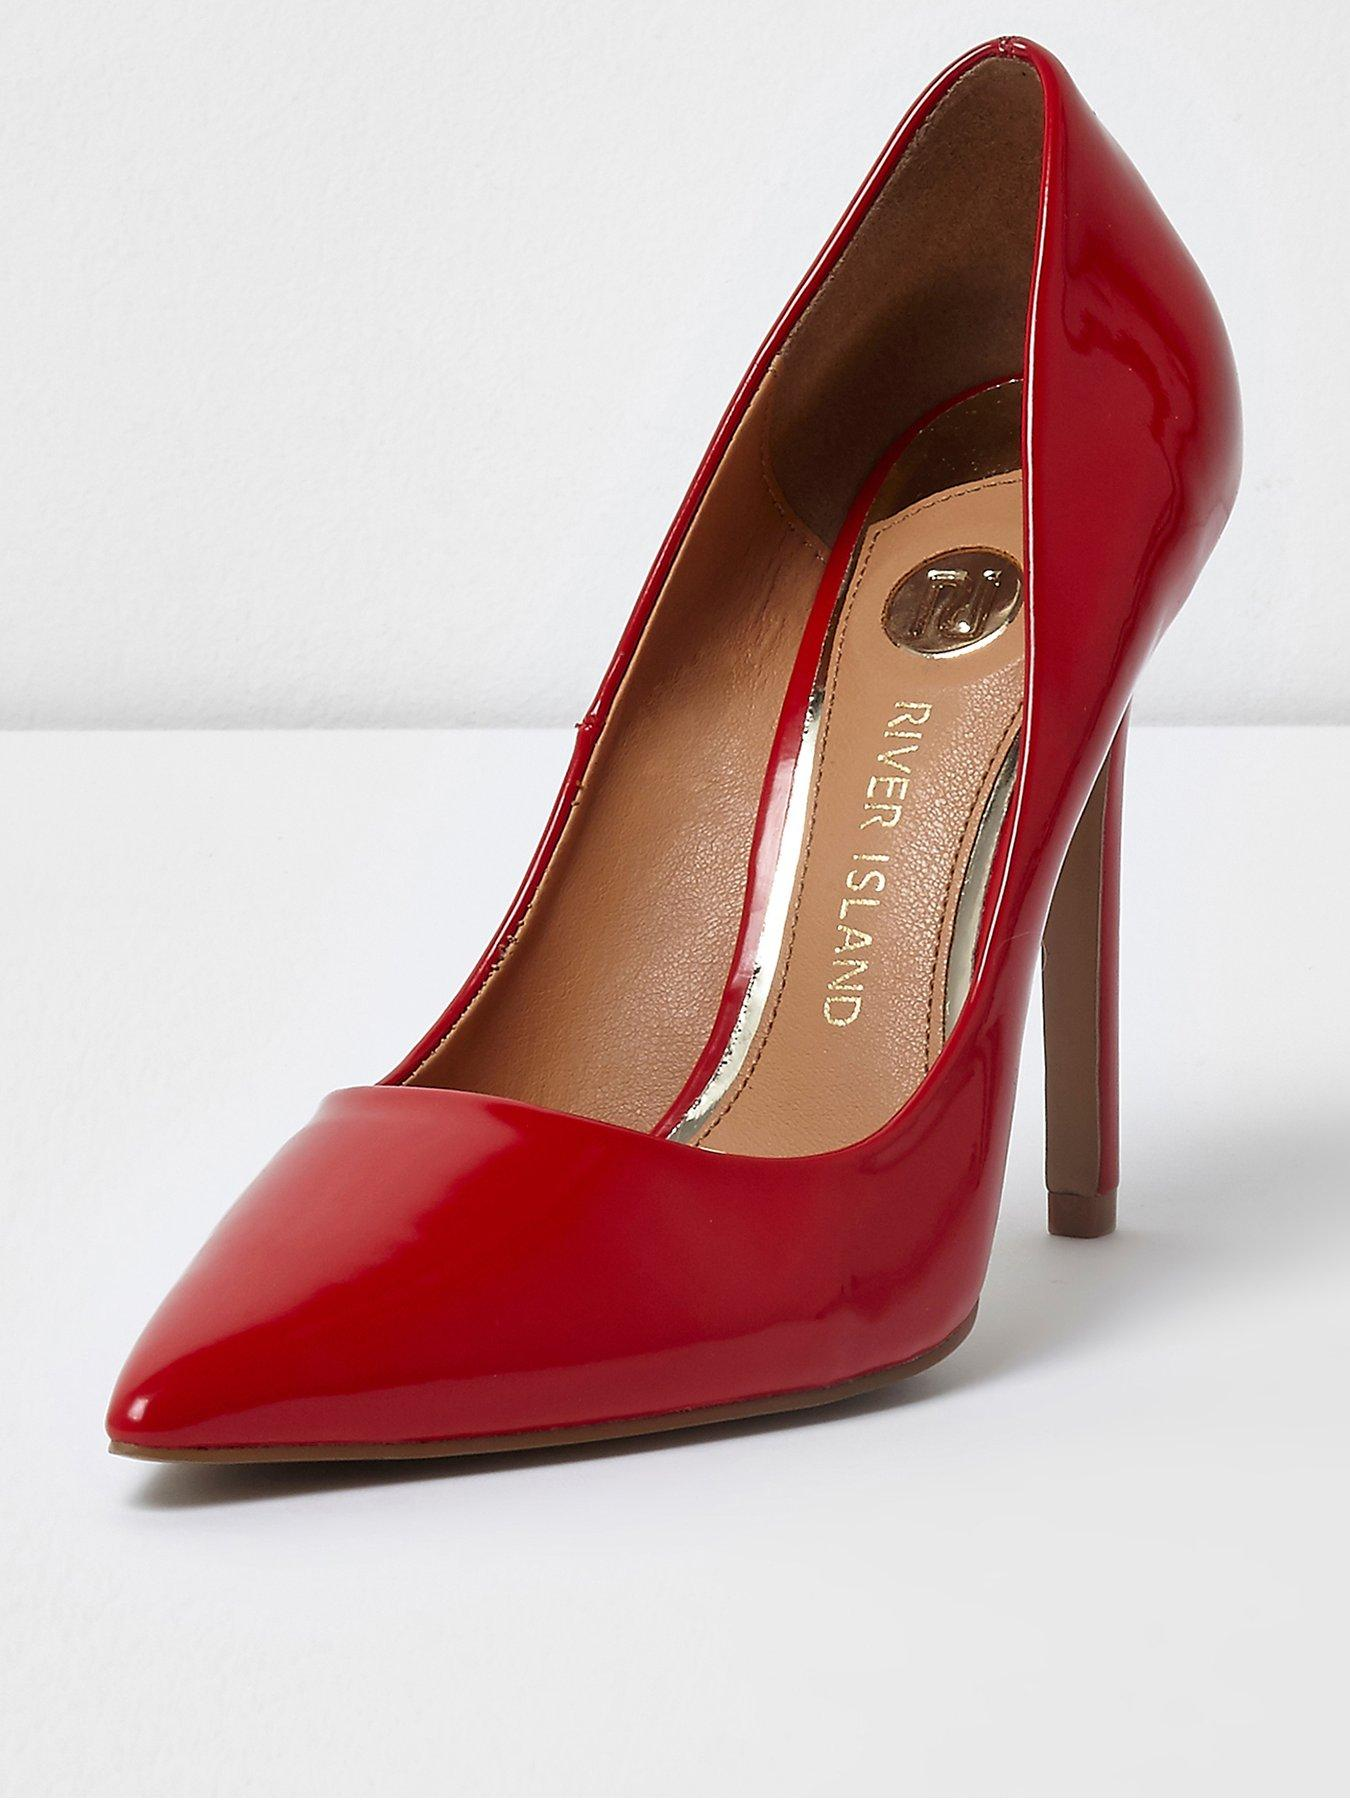 River Island River Island Patent Pointed High Heels Red 1600220673 Women's Shoes River Island Heels